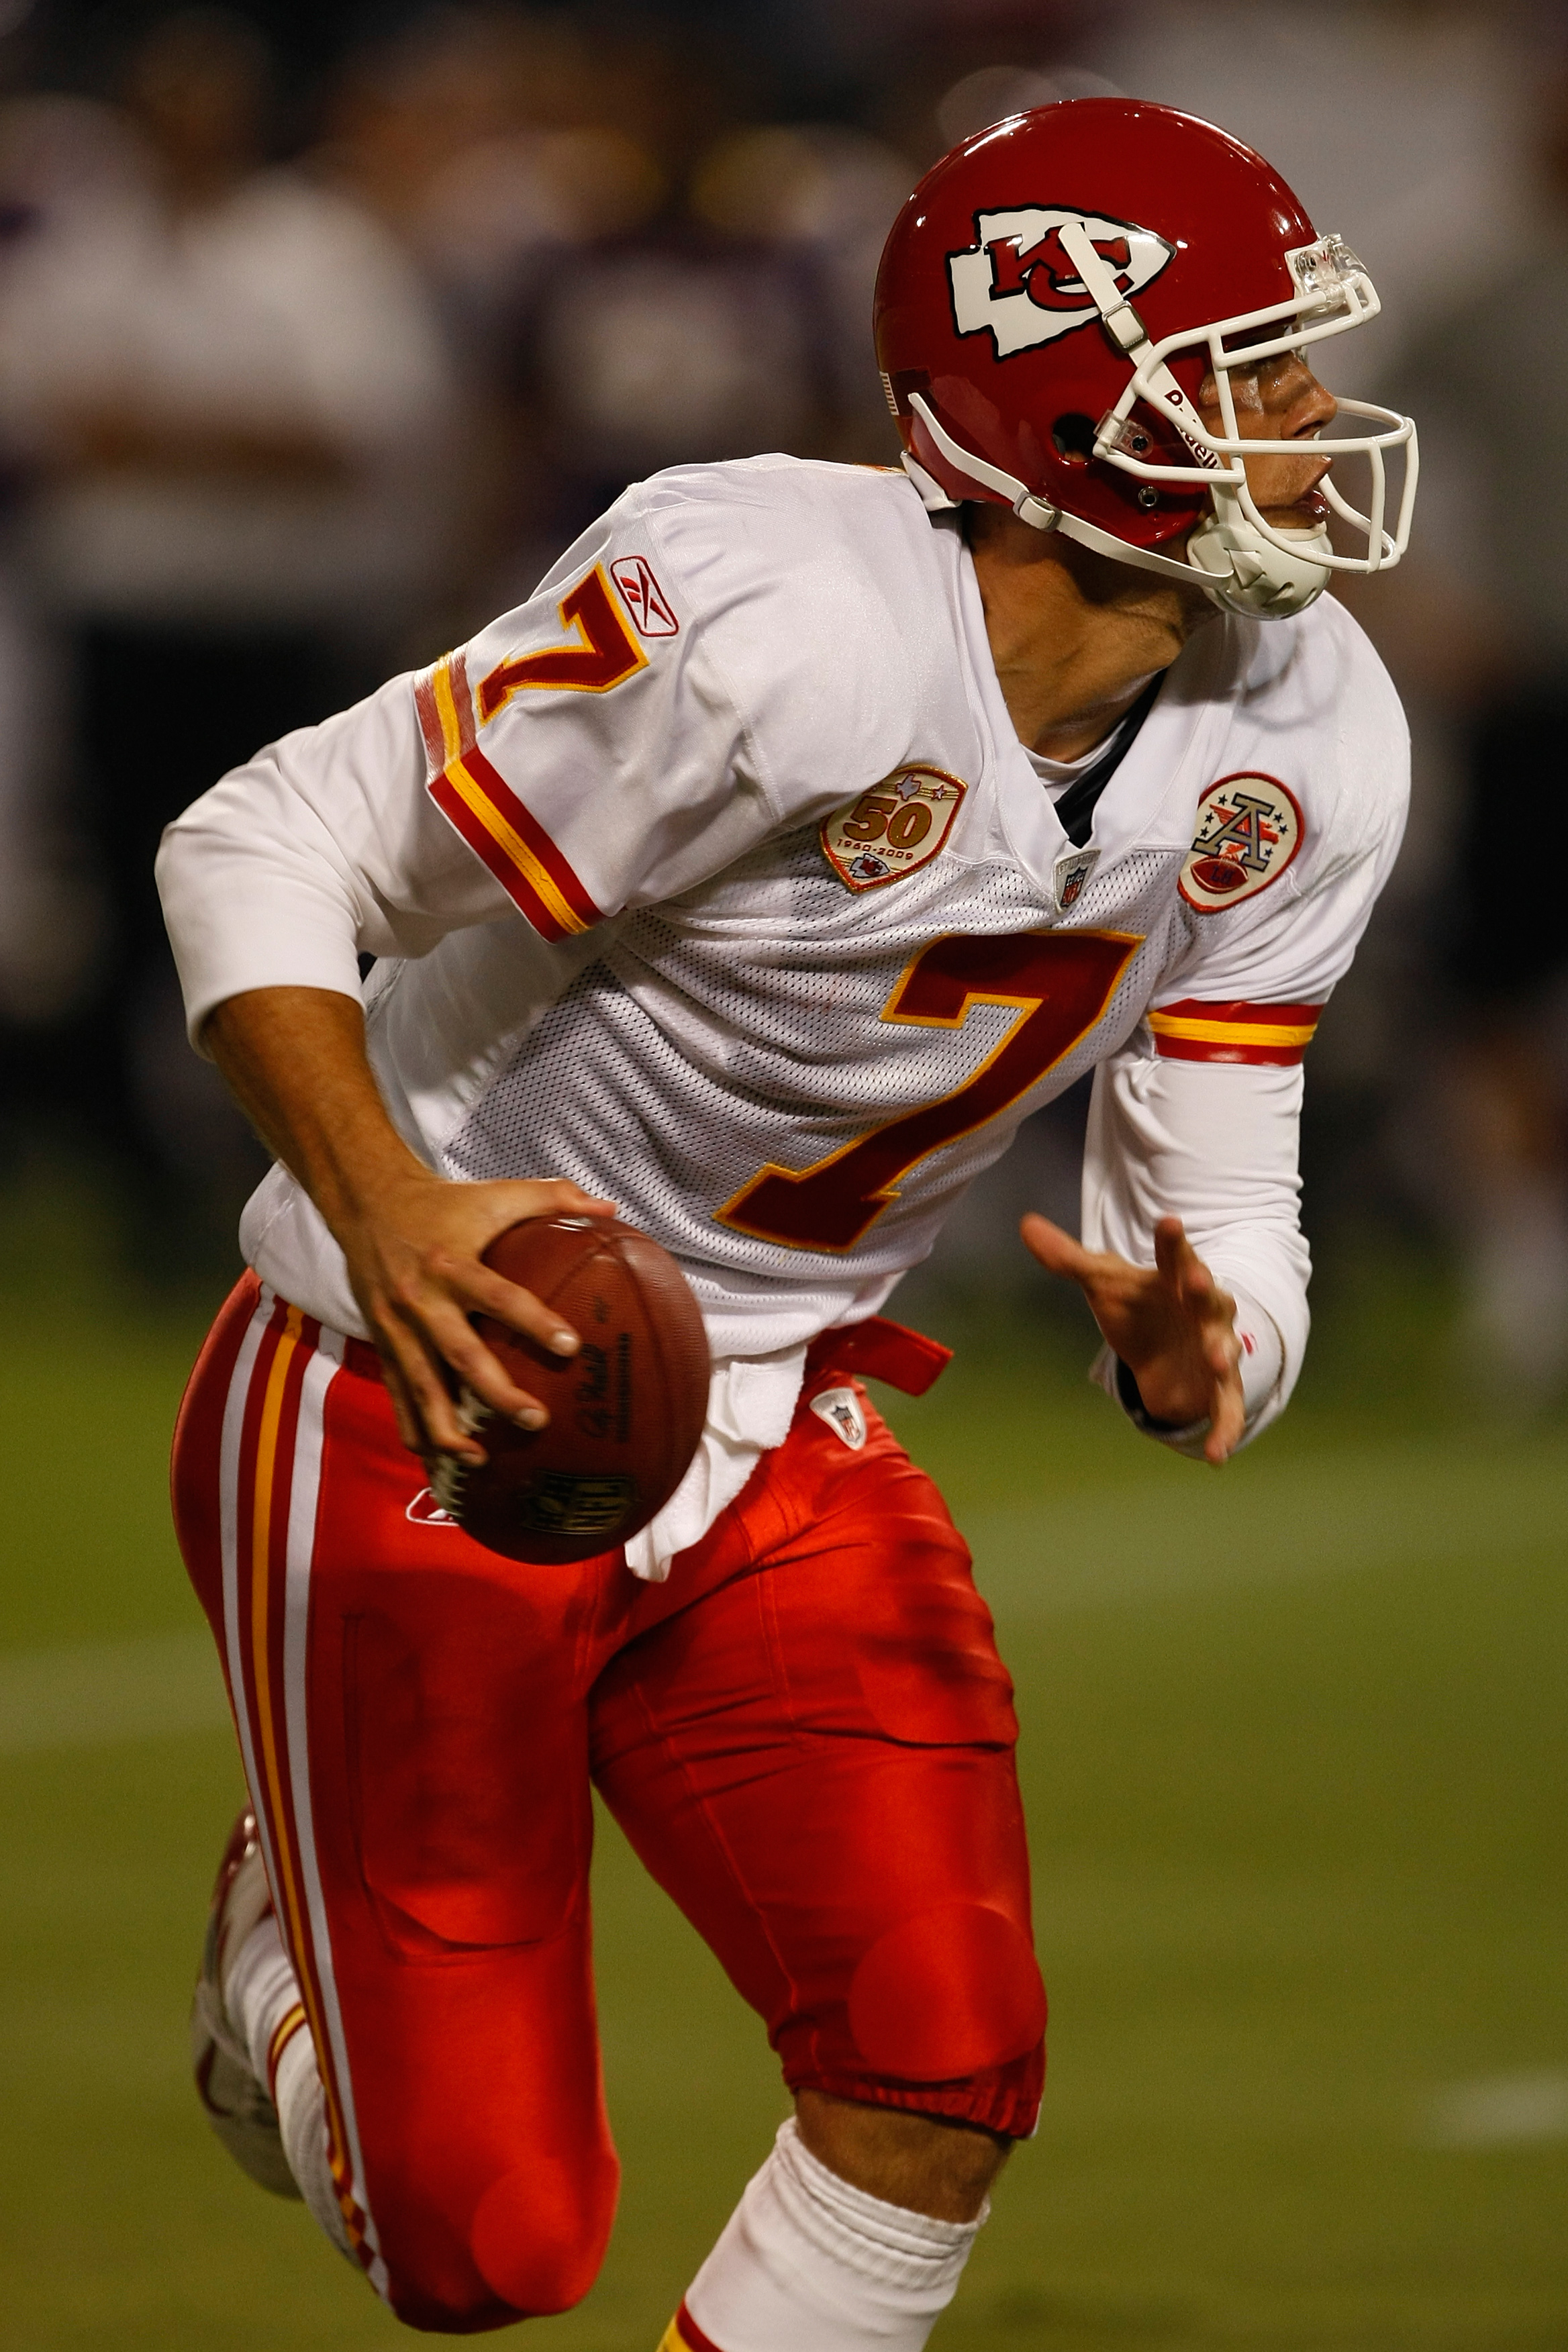 MINNEAPOLIS, MN - AUGUST 21: Quarterback Matt Cassell #7 of the Kansas City Chiefs runs with the football against the Minnesota Vikings at Hubert H. Humphrey Metrodome on August 21, 2009 in Minneapolis, Minnesota. The Vikings defeated the Chiefs 17-13. (P